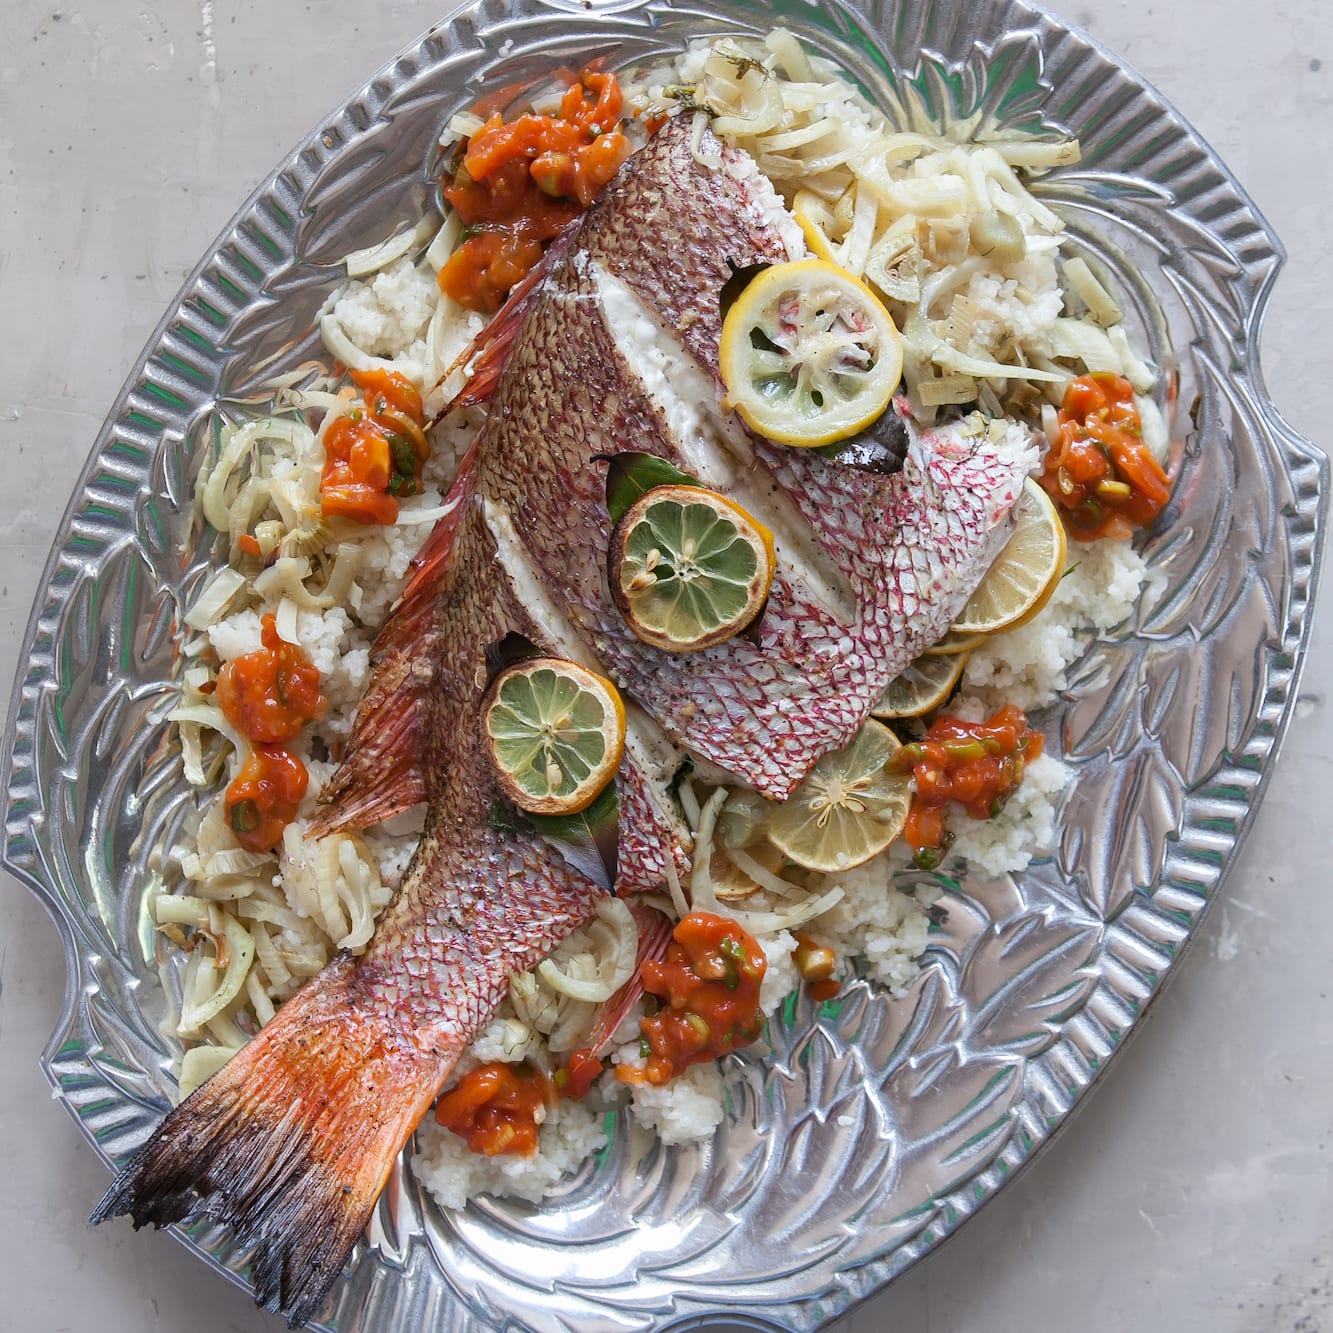 Herb-Roasted Whole Fish with Middlins and Tomato Gravy